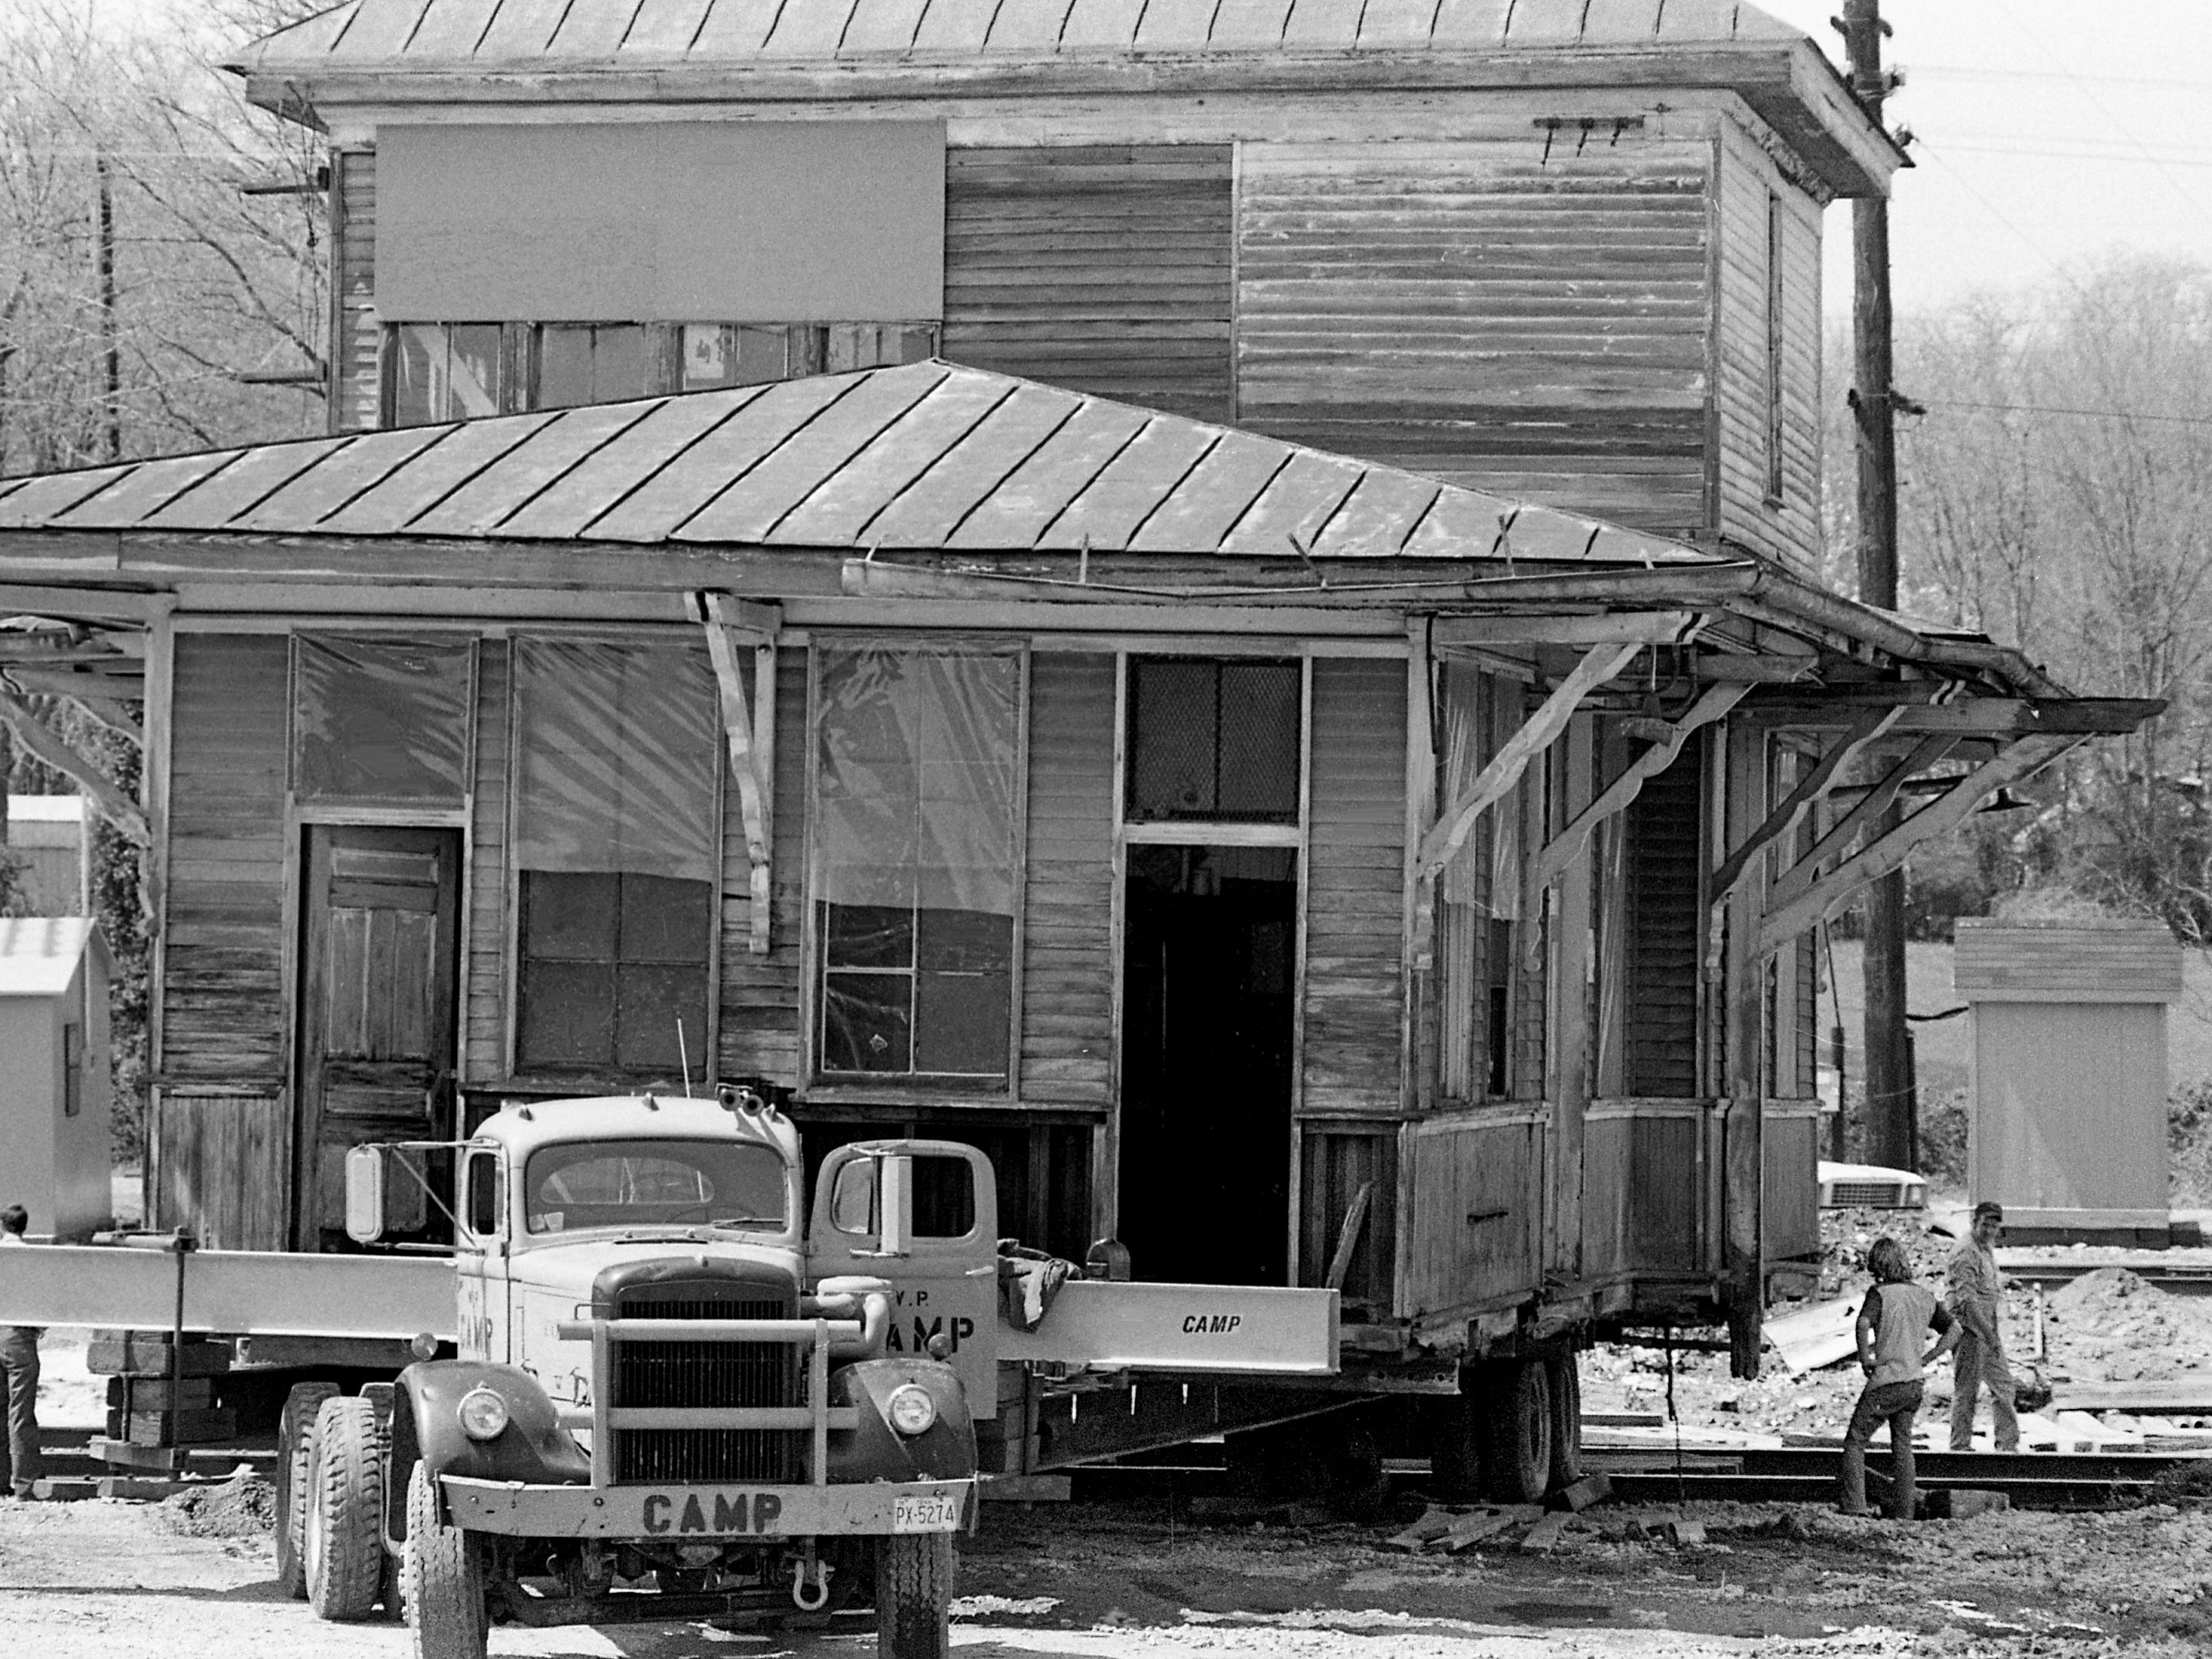 The old Amqui railroad station in Madison is being move across the L&N Railroad tracks and head toward it new home in Hendersonville on April 5, 1979. L&N officials gave the 68-year-old depot to singer Johnny Cash, a train buff, provided he pay the cost of getting it off railroad property. Cash is expected to pay $25,000 to W.P. Camp & Sons, house movers, for the job.